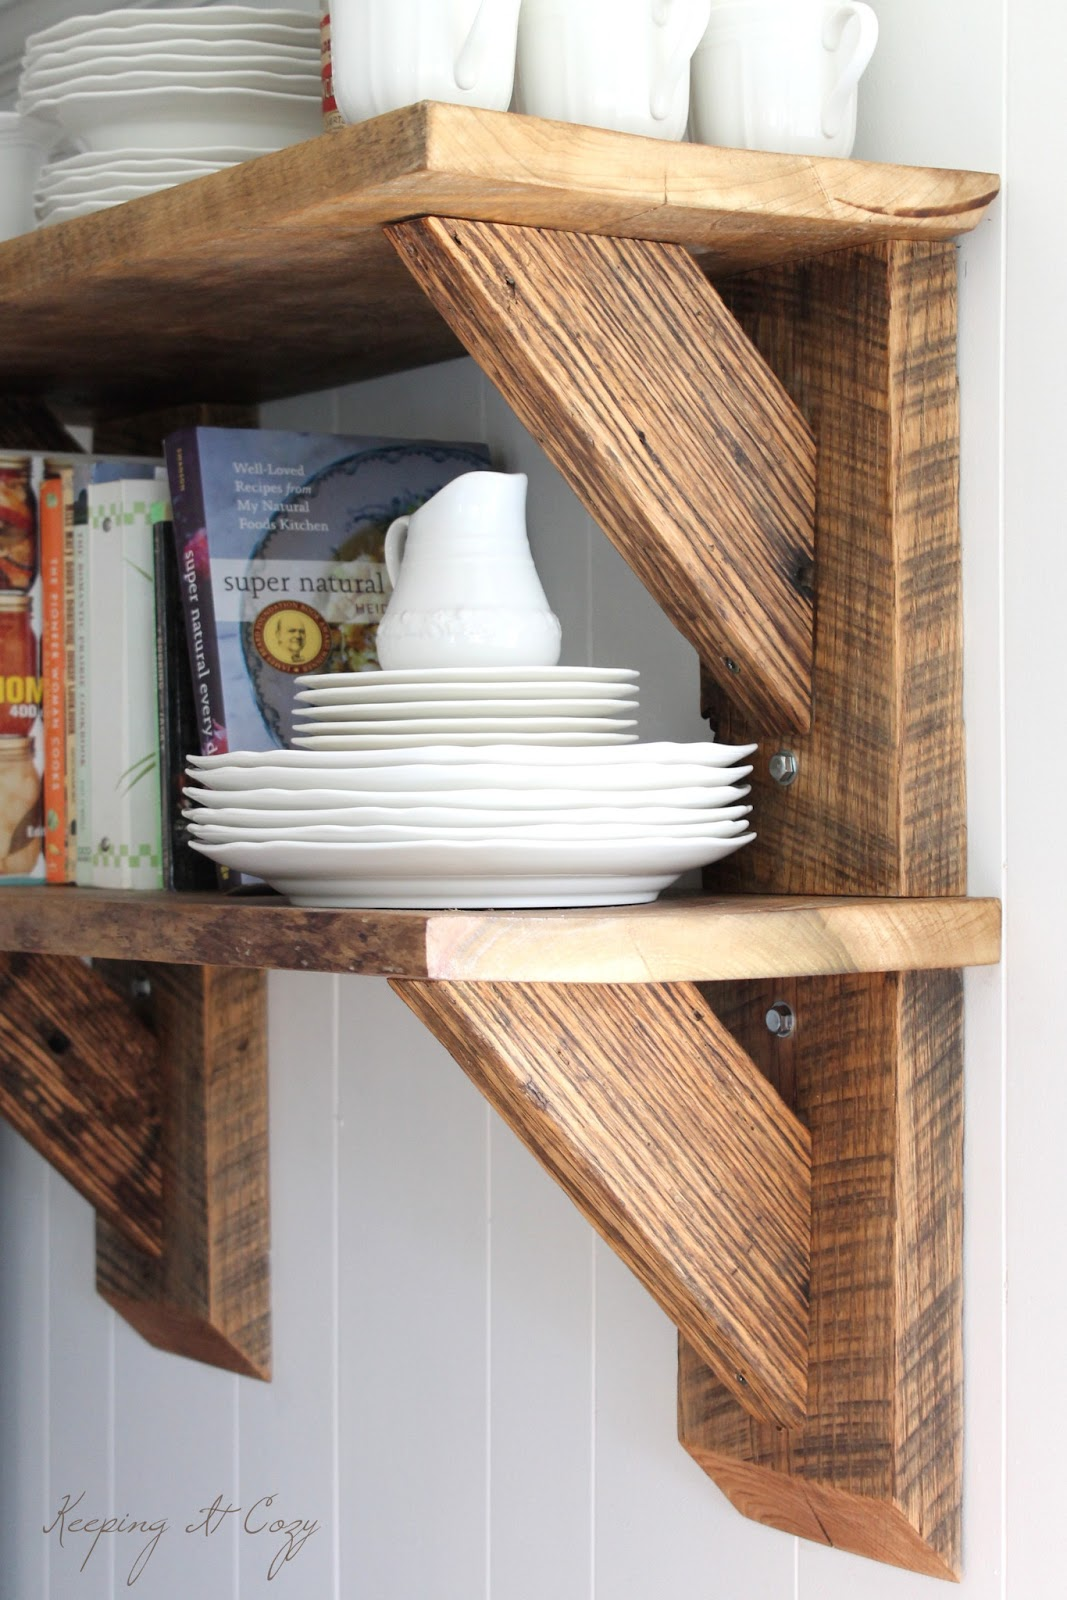 Keeping it cozy reclaimed wood kitchen shelves Cool wood shelf ideas